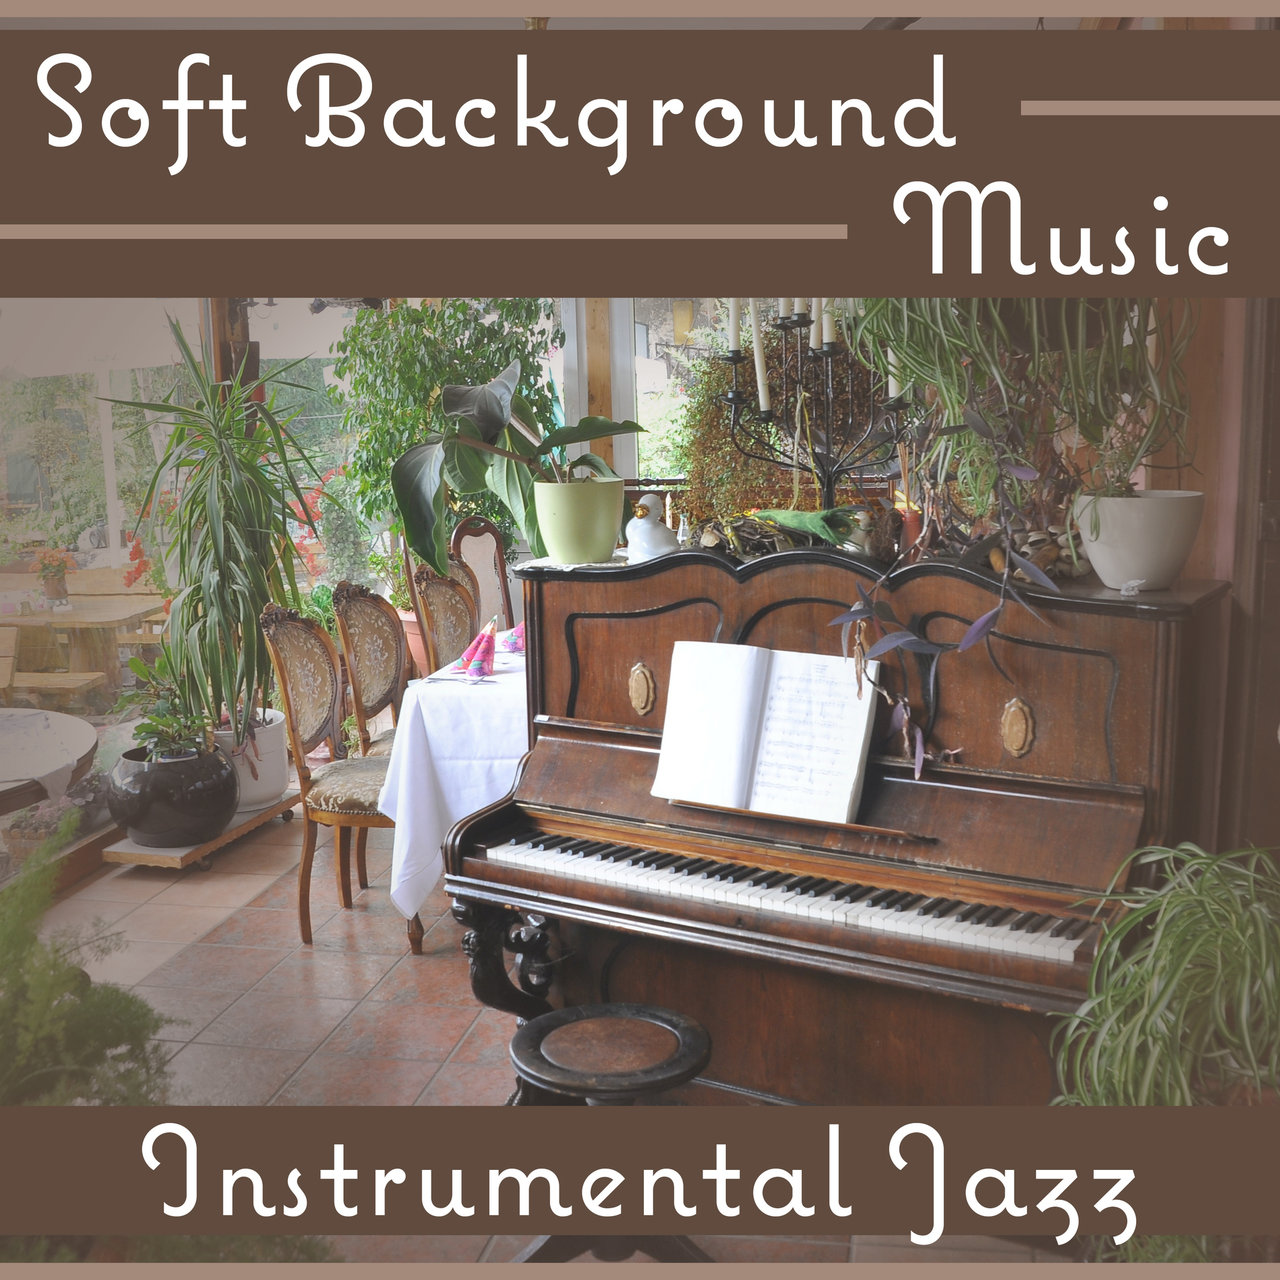 Soft instrumental music mp3 songs download